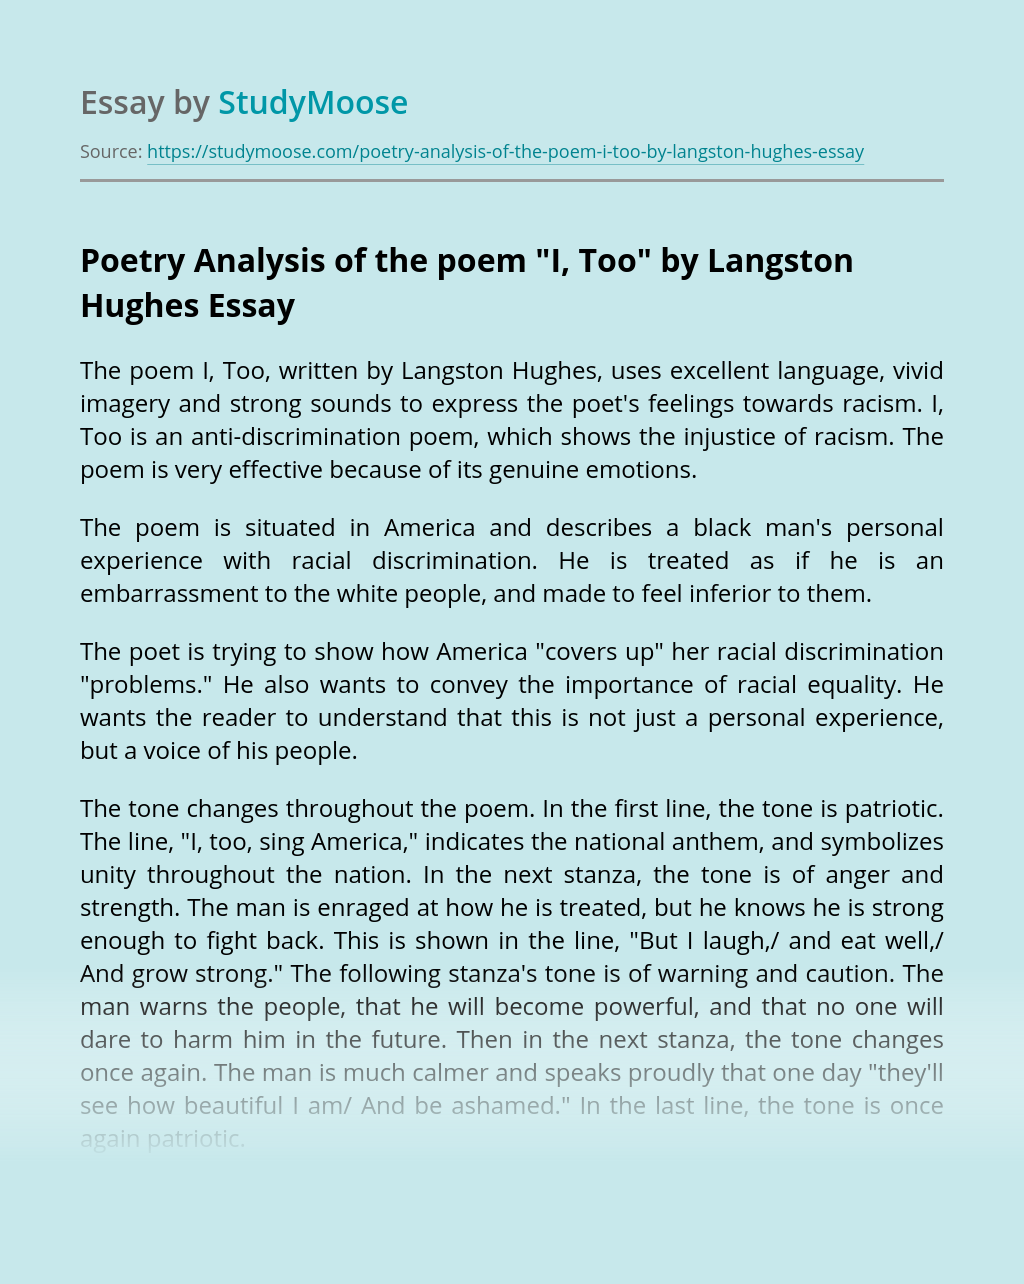 Poetry Analysis of the poem